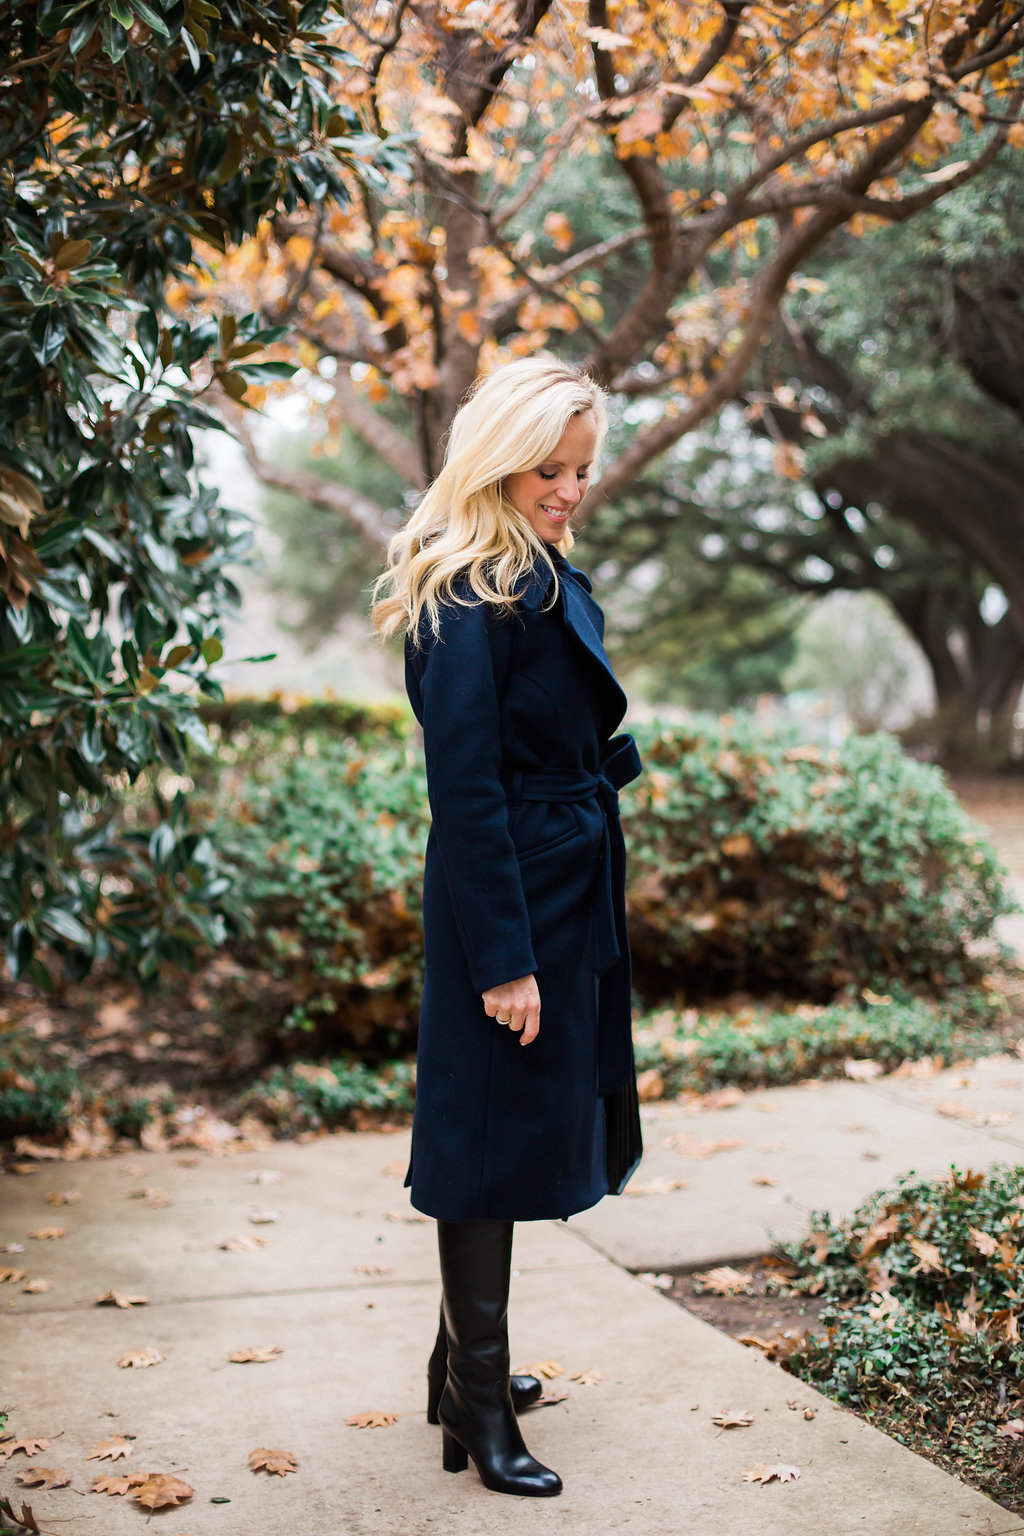 My Favorite Five: Classic Coats Everyone Needs